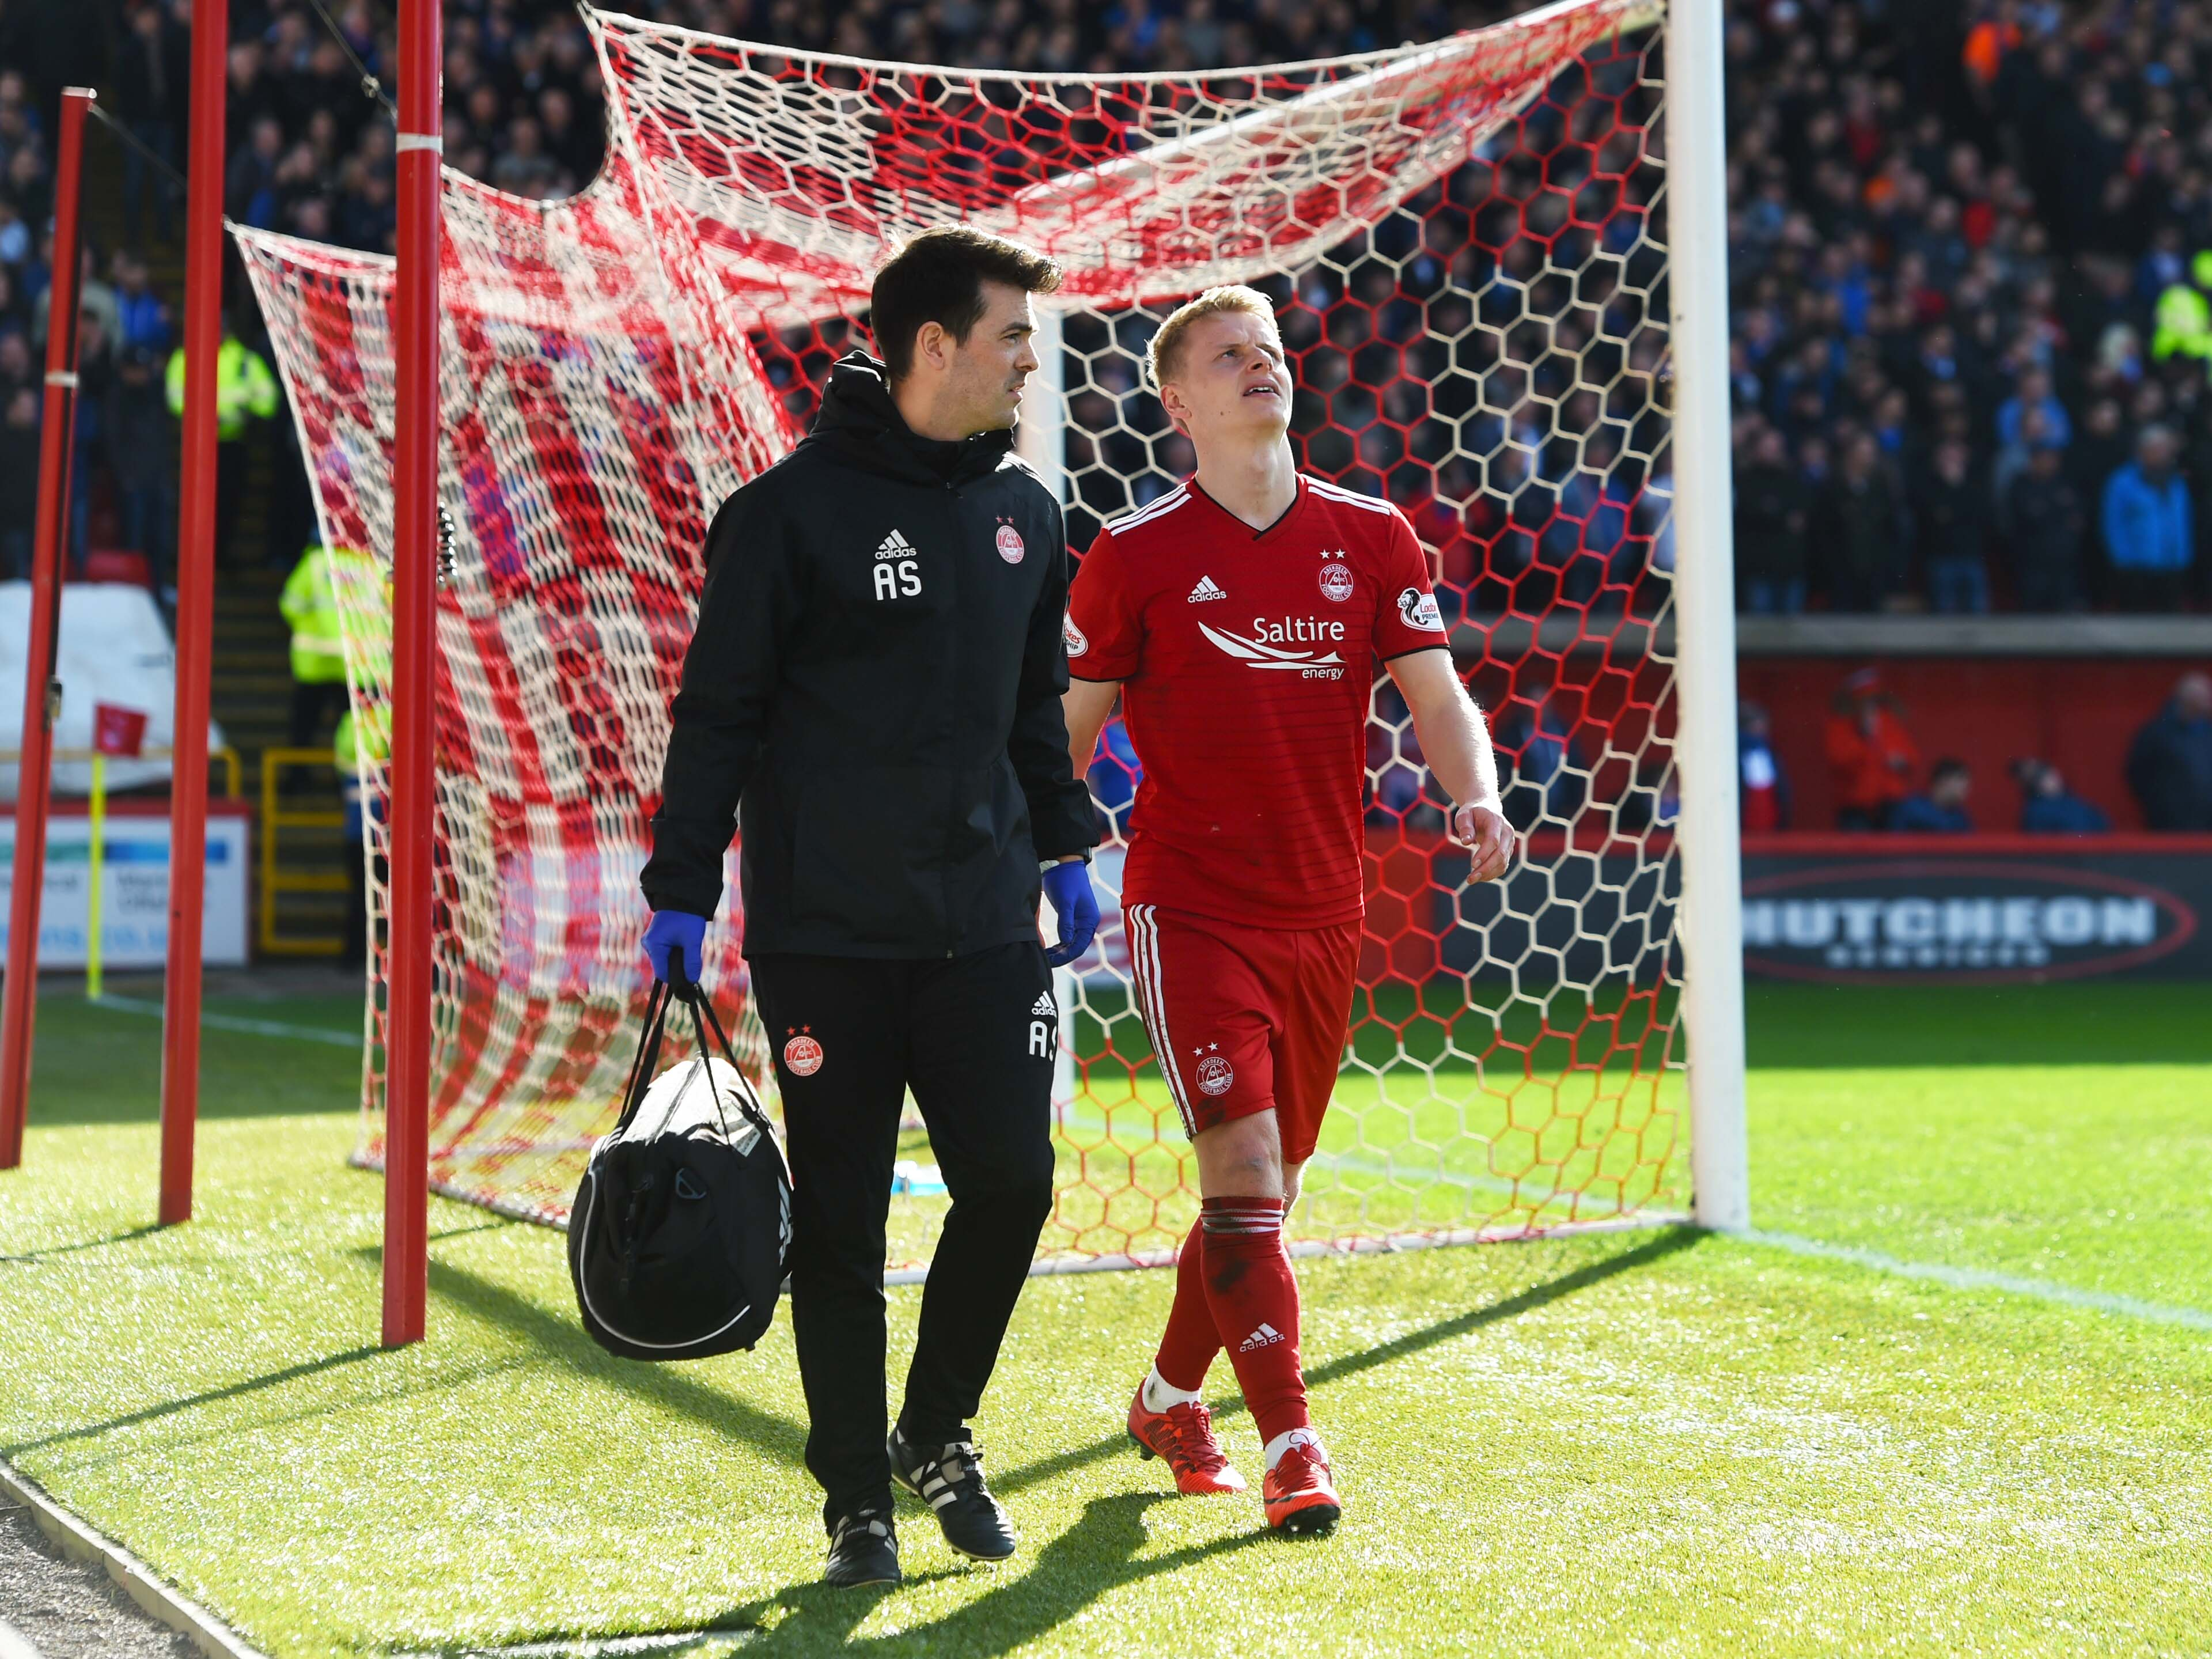 Aberdeen's Gary Mackay-Steven was injured following a challenge from Connor Goldson.